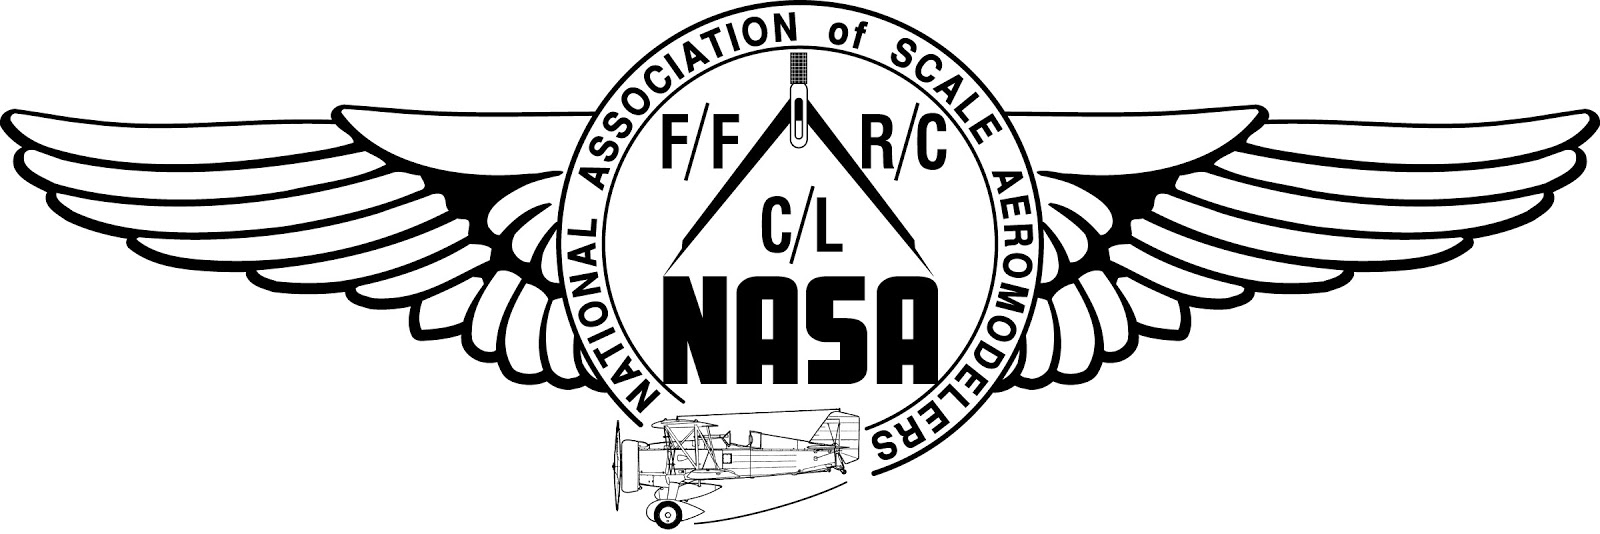 nasa logo copyright - photo #16